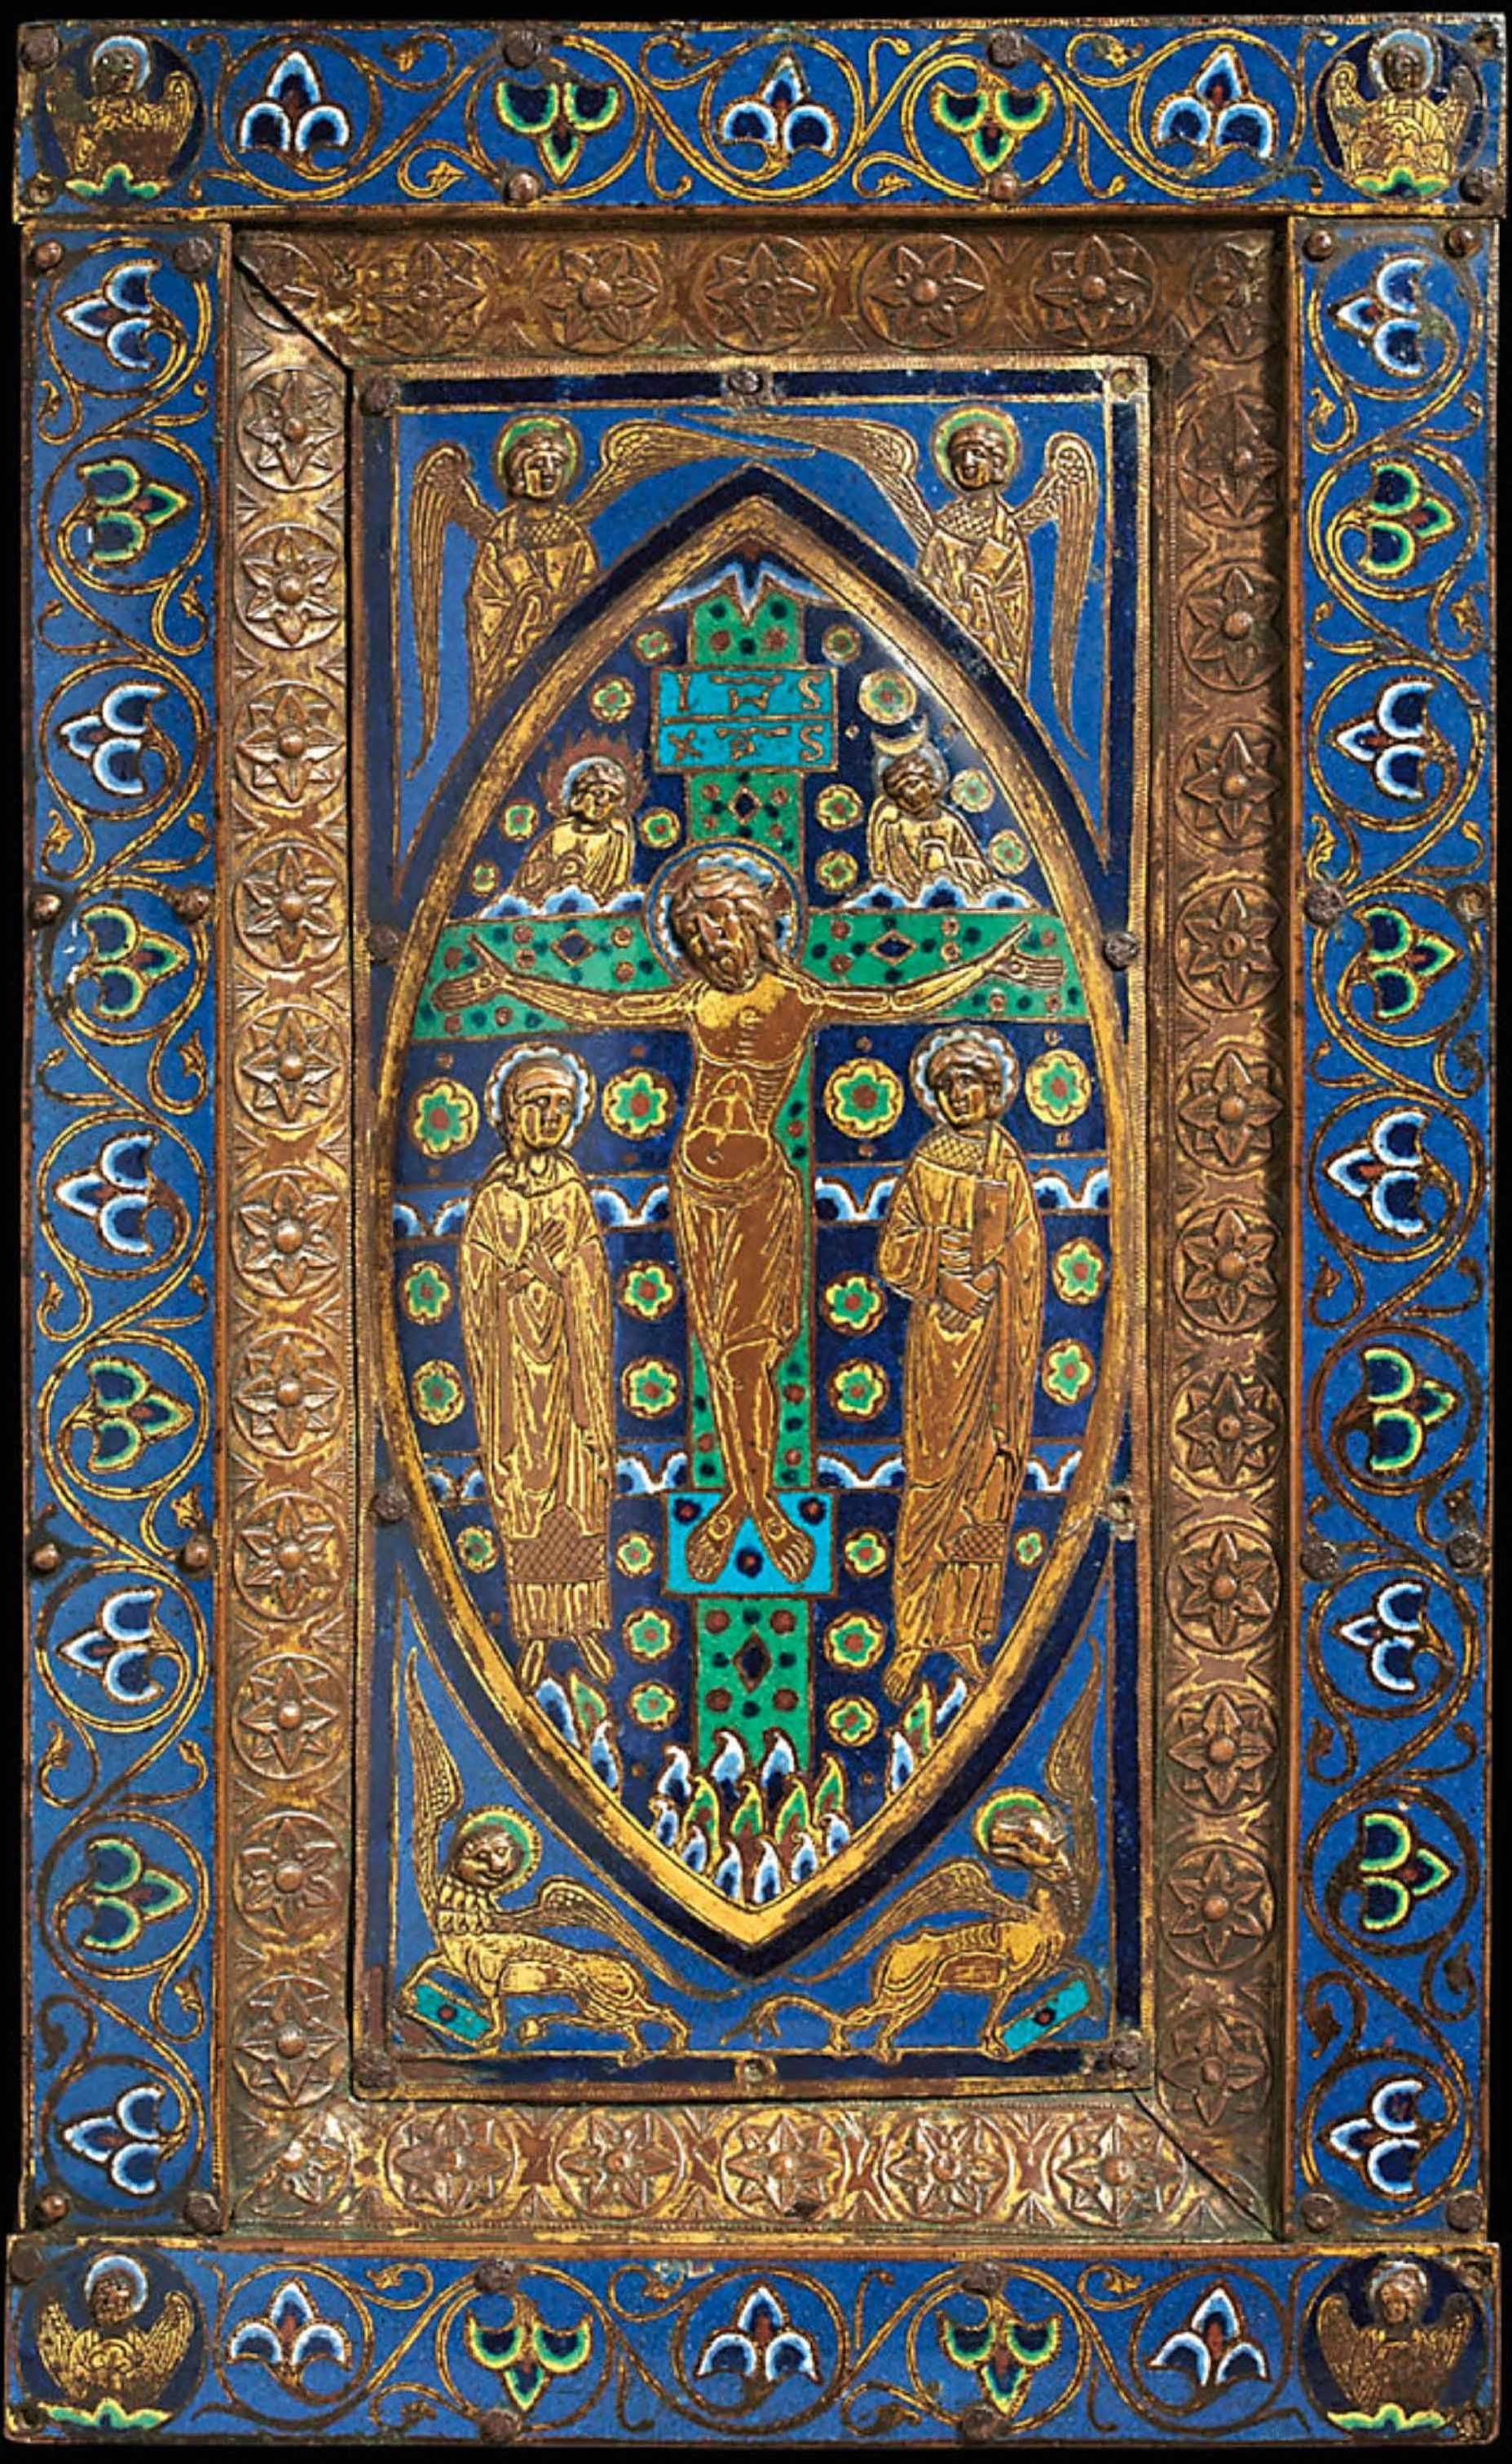 A RECTANGULAR GILT-COPPER AND POLYCHROME CHAMPLEVE ENAMEL BOOK COVER, LIMOGES, CIRCA 1190-1200,